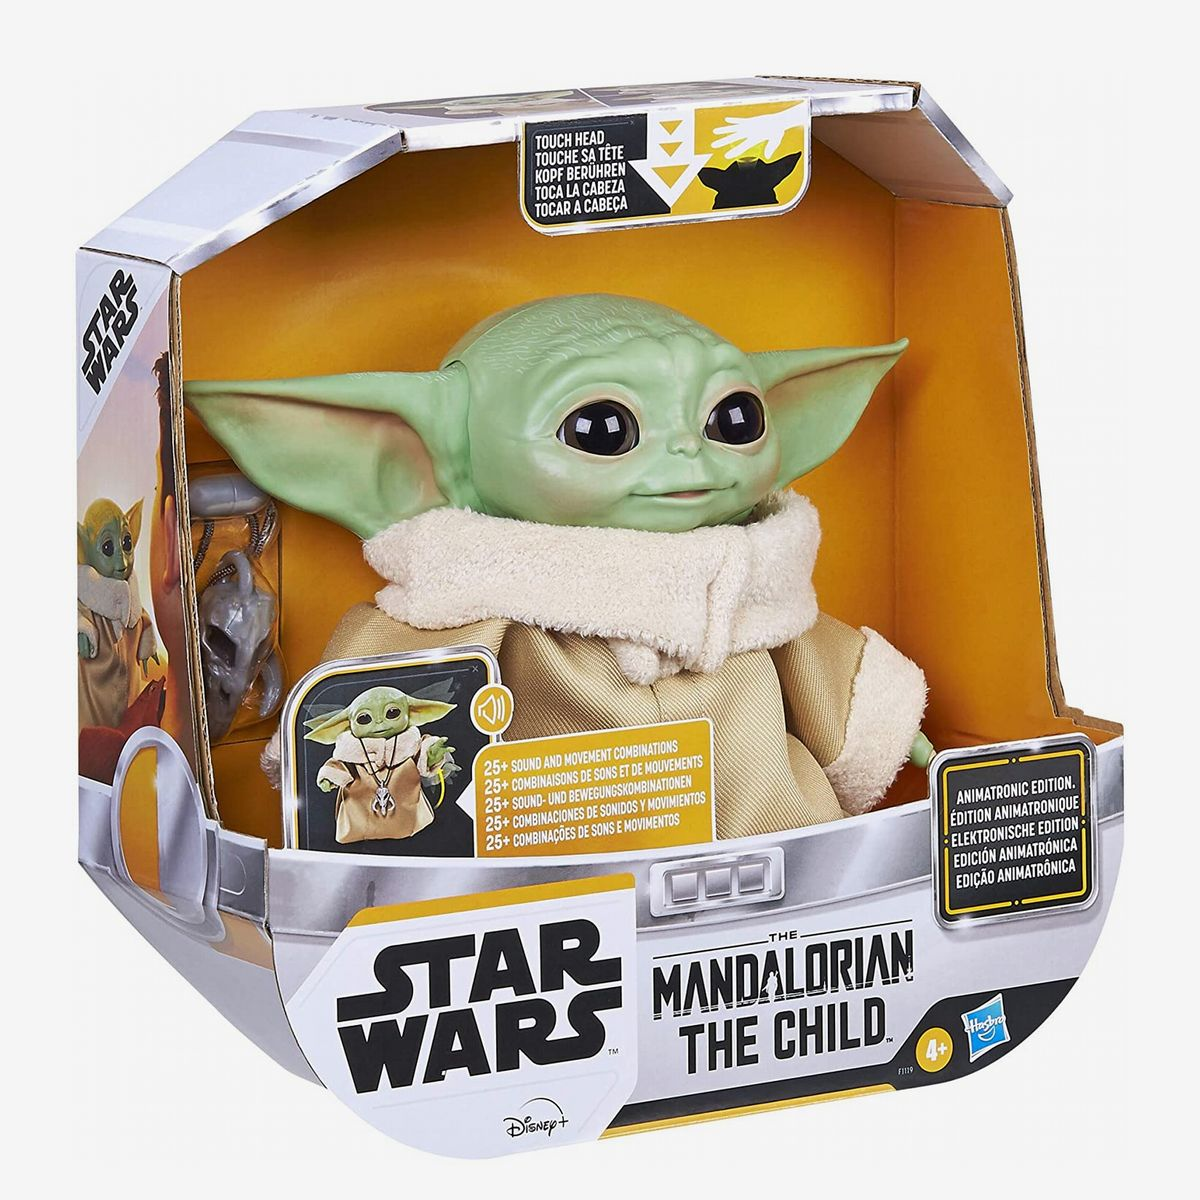 Toys That Will Be Popular For Christmas 2021 The Top Kids Toys For Christmas Best Christmas Toys 2021 The Strategist New York Magazine